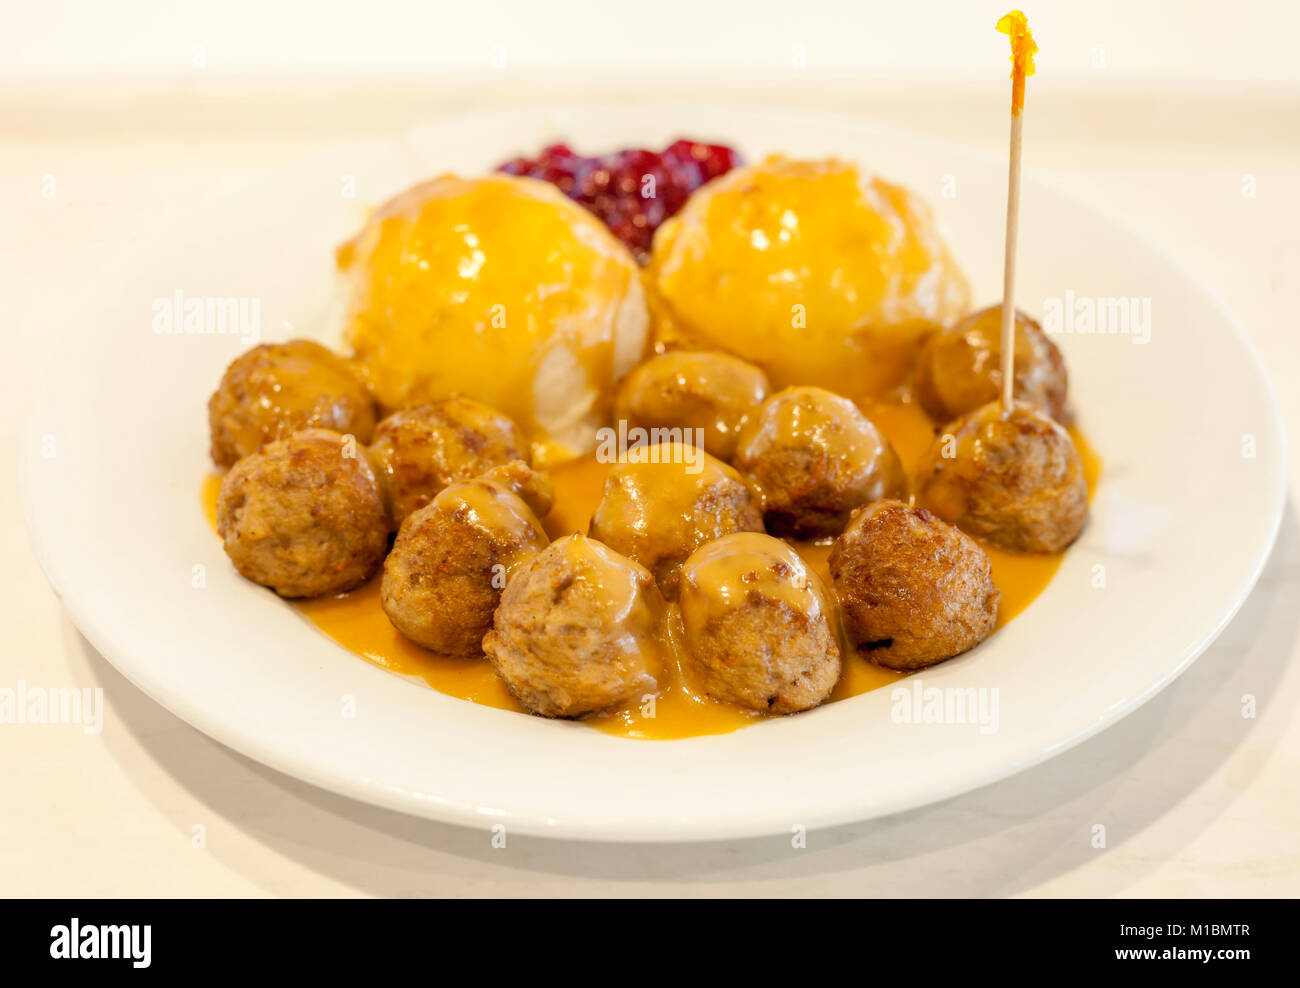 Plate of swedish meatballs with gravy and side of mash potatoes and lingonberry jam - Stock Image